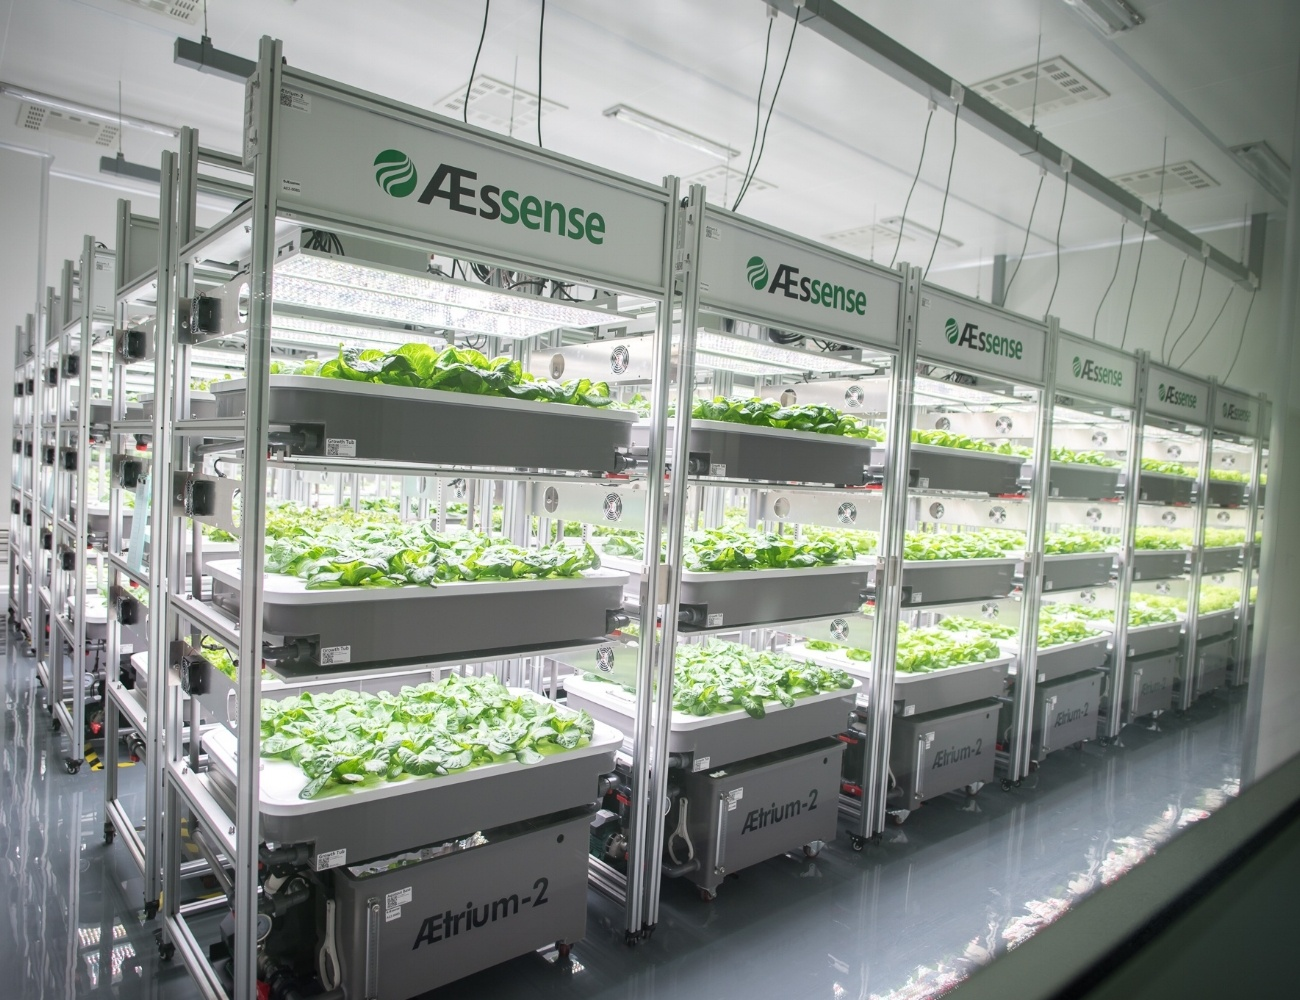 AEtrium-2 Vertical Farming in Production